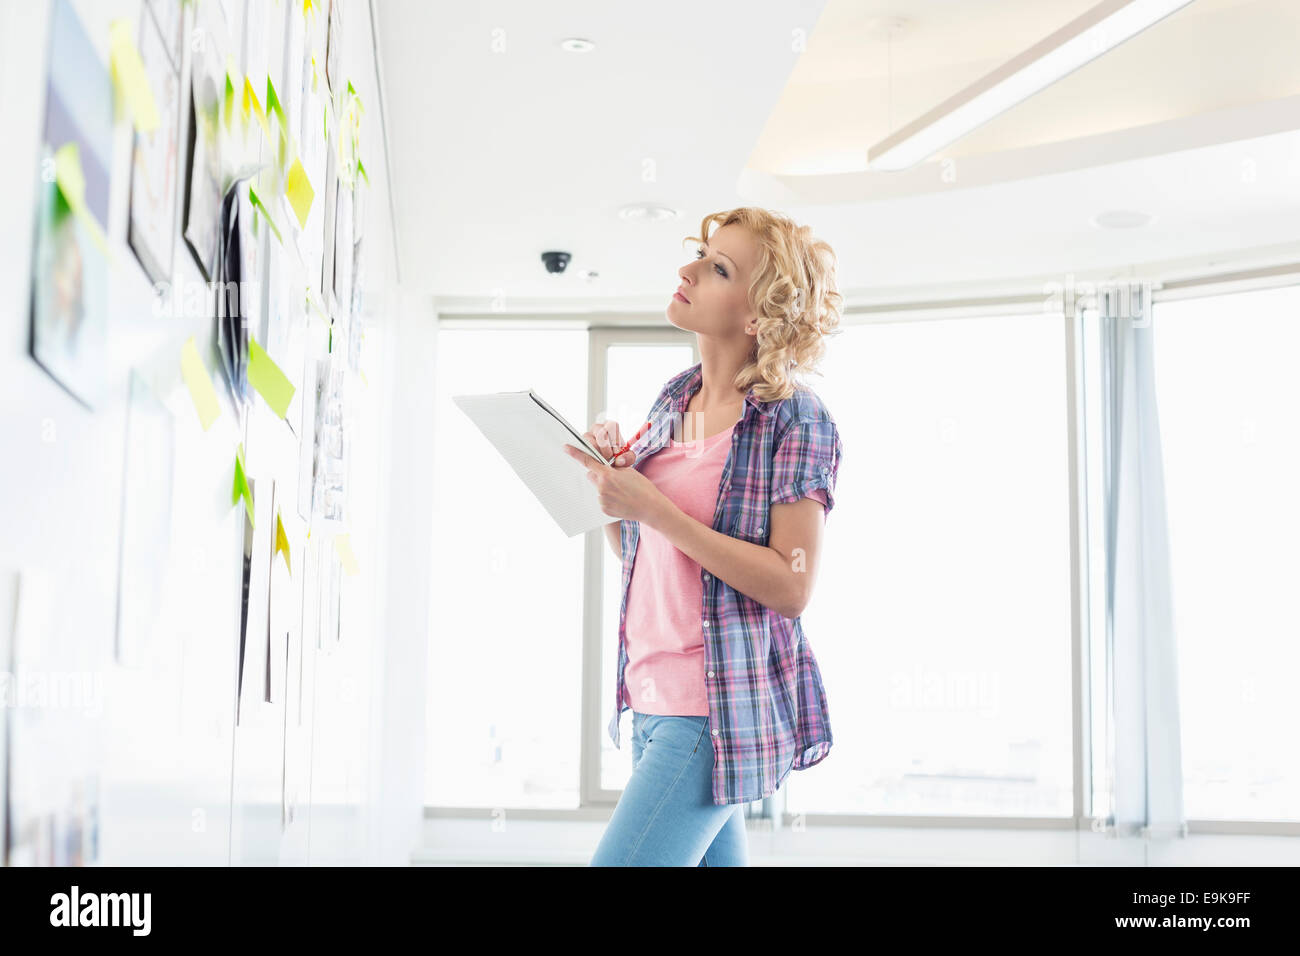 Creative businesswoman looking at papers stuck on wall while writing notes in office - Stock Image